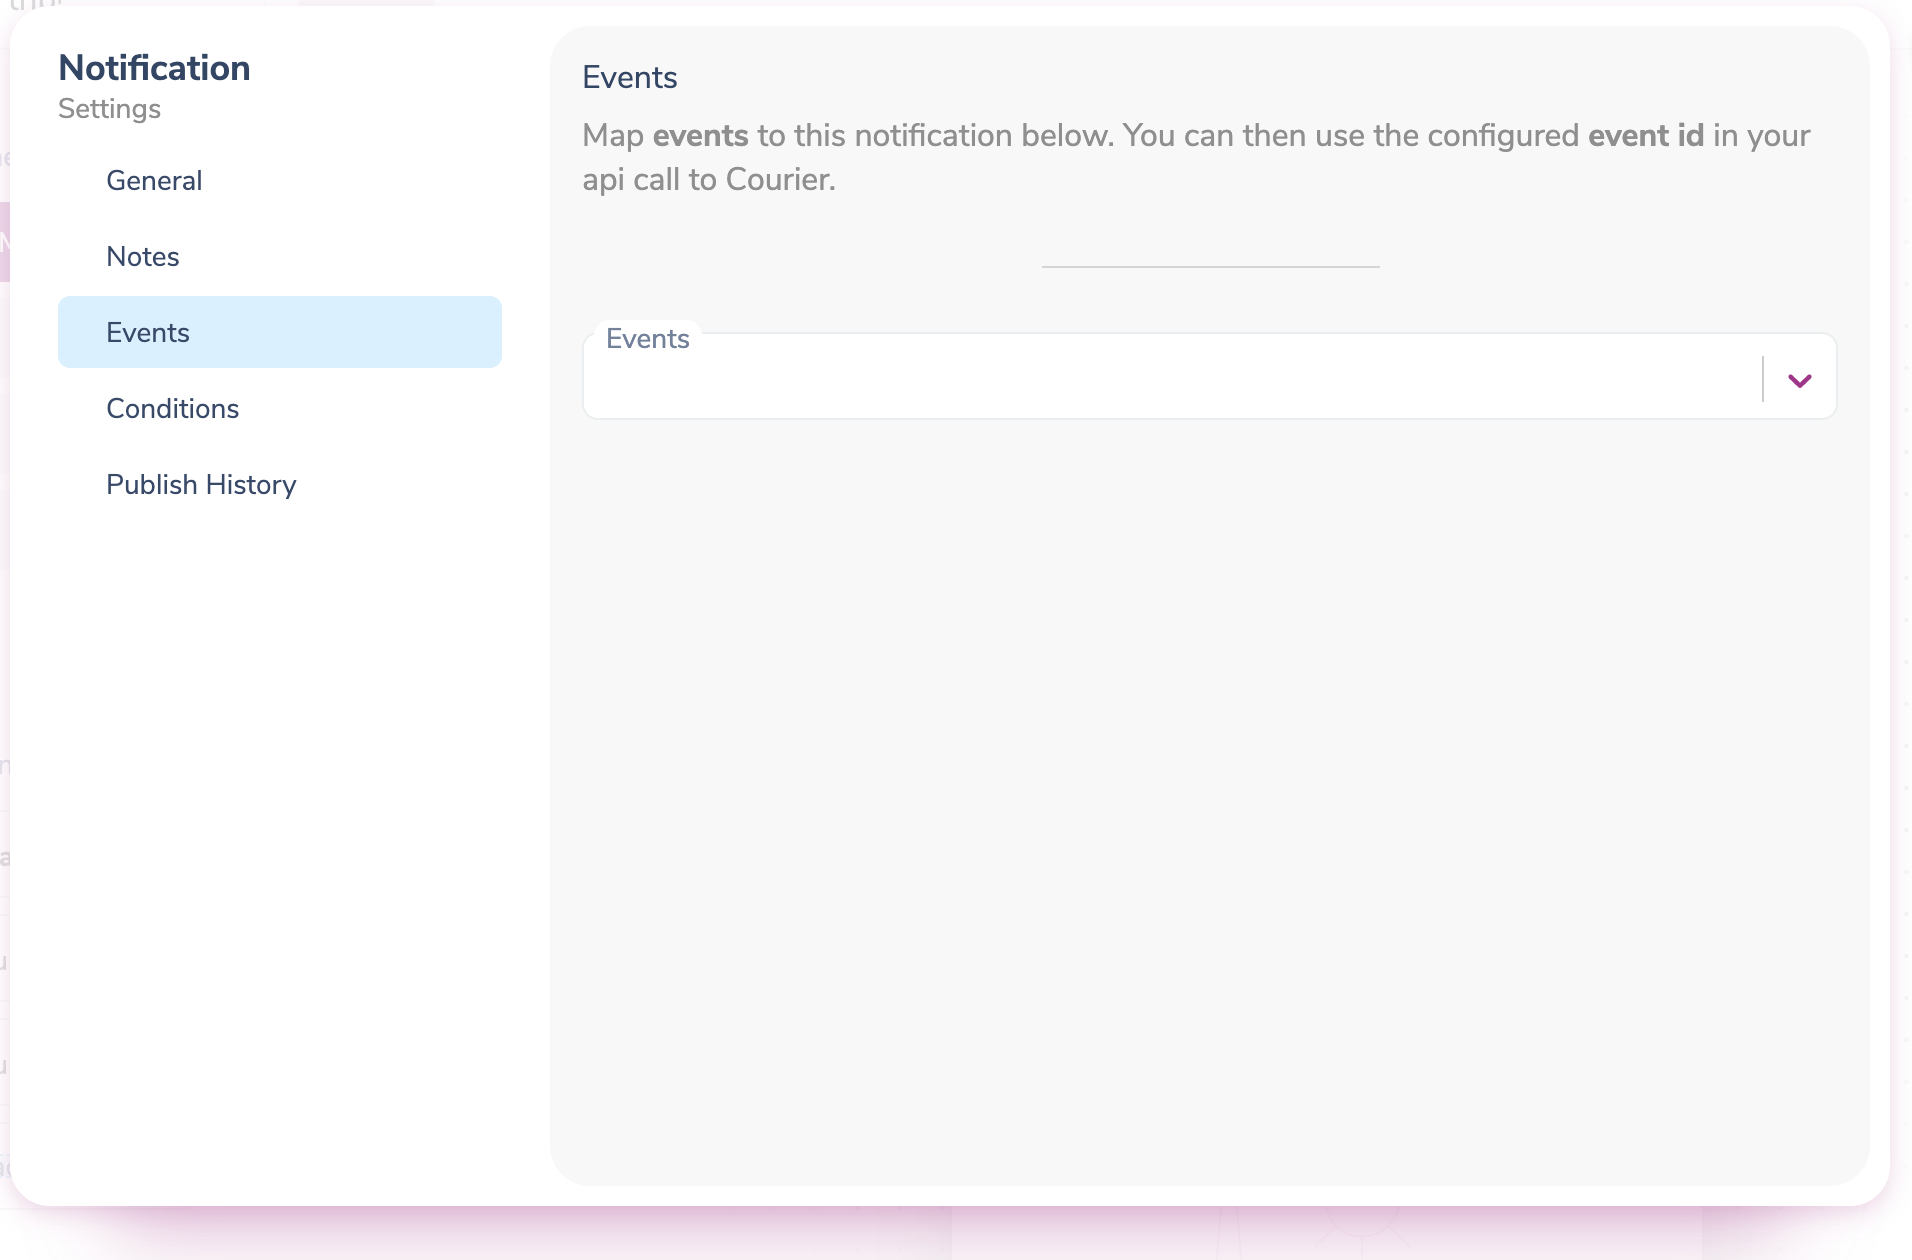 Mapping Events to Notification Templates in Courier